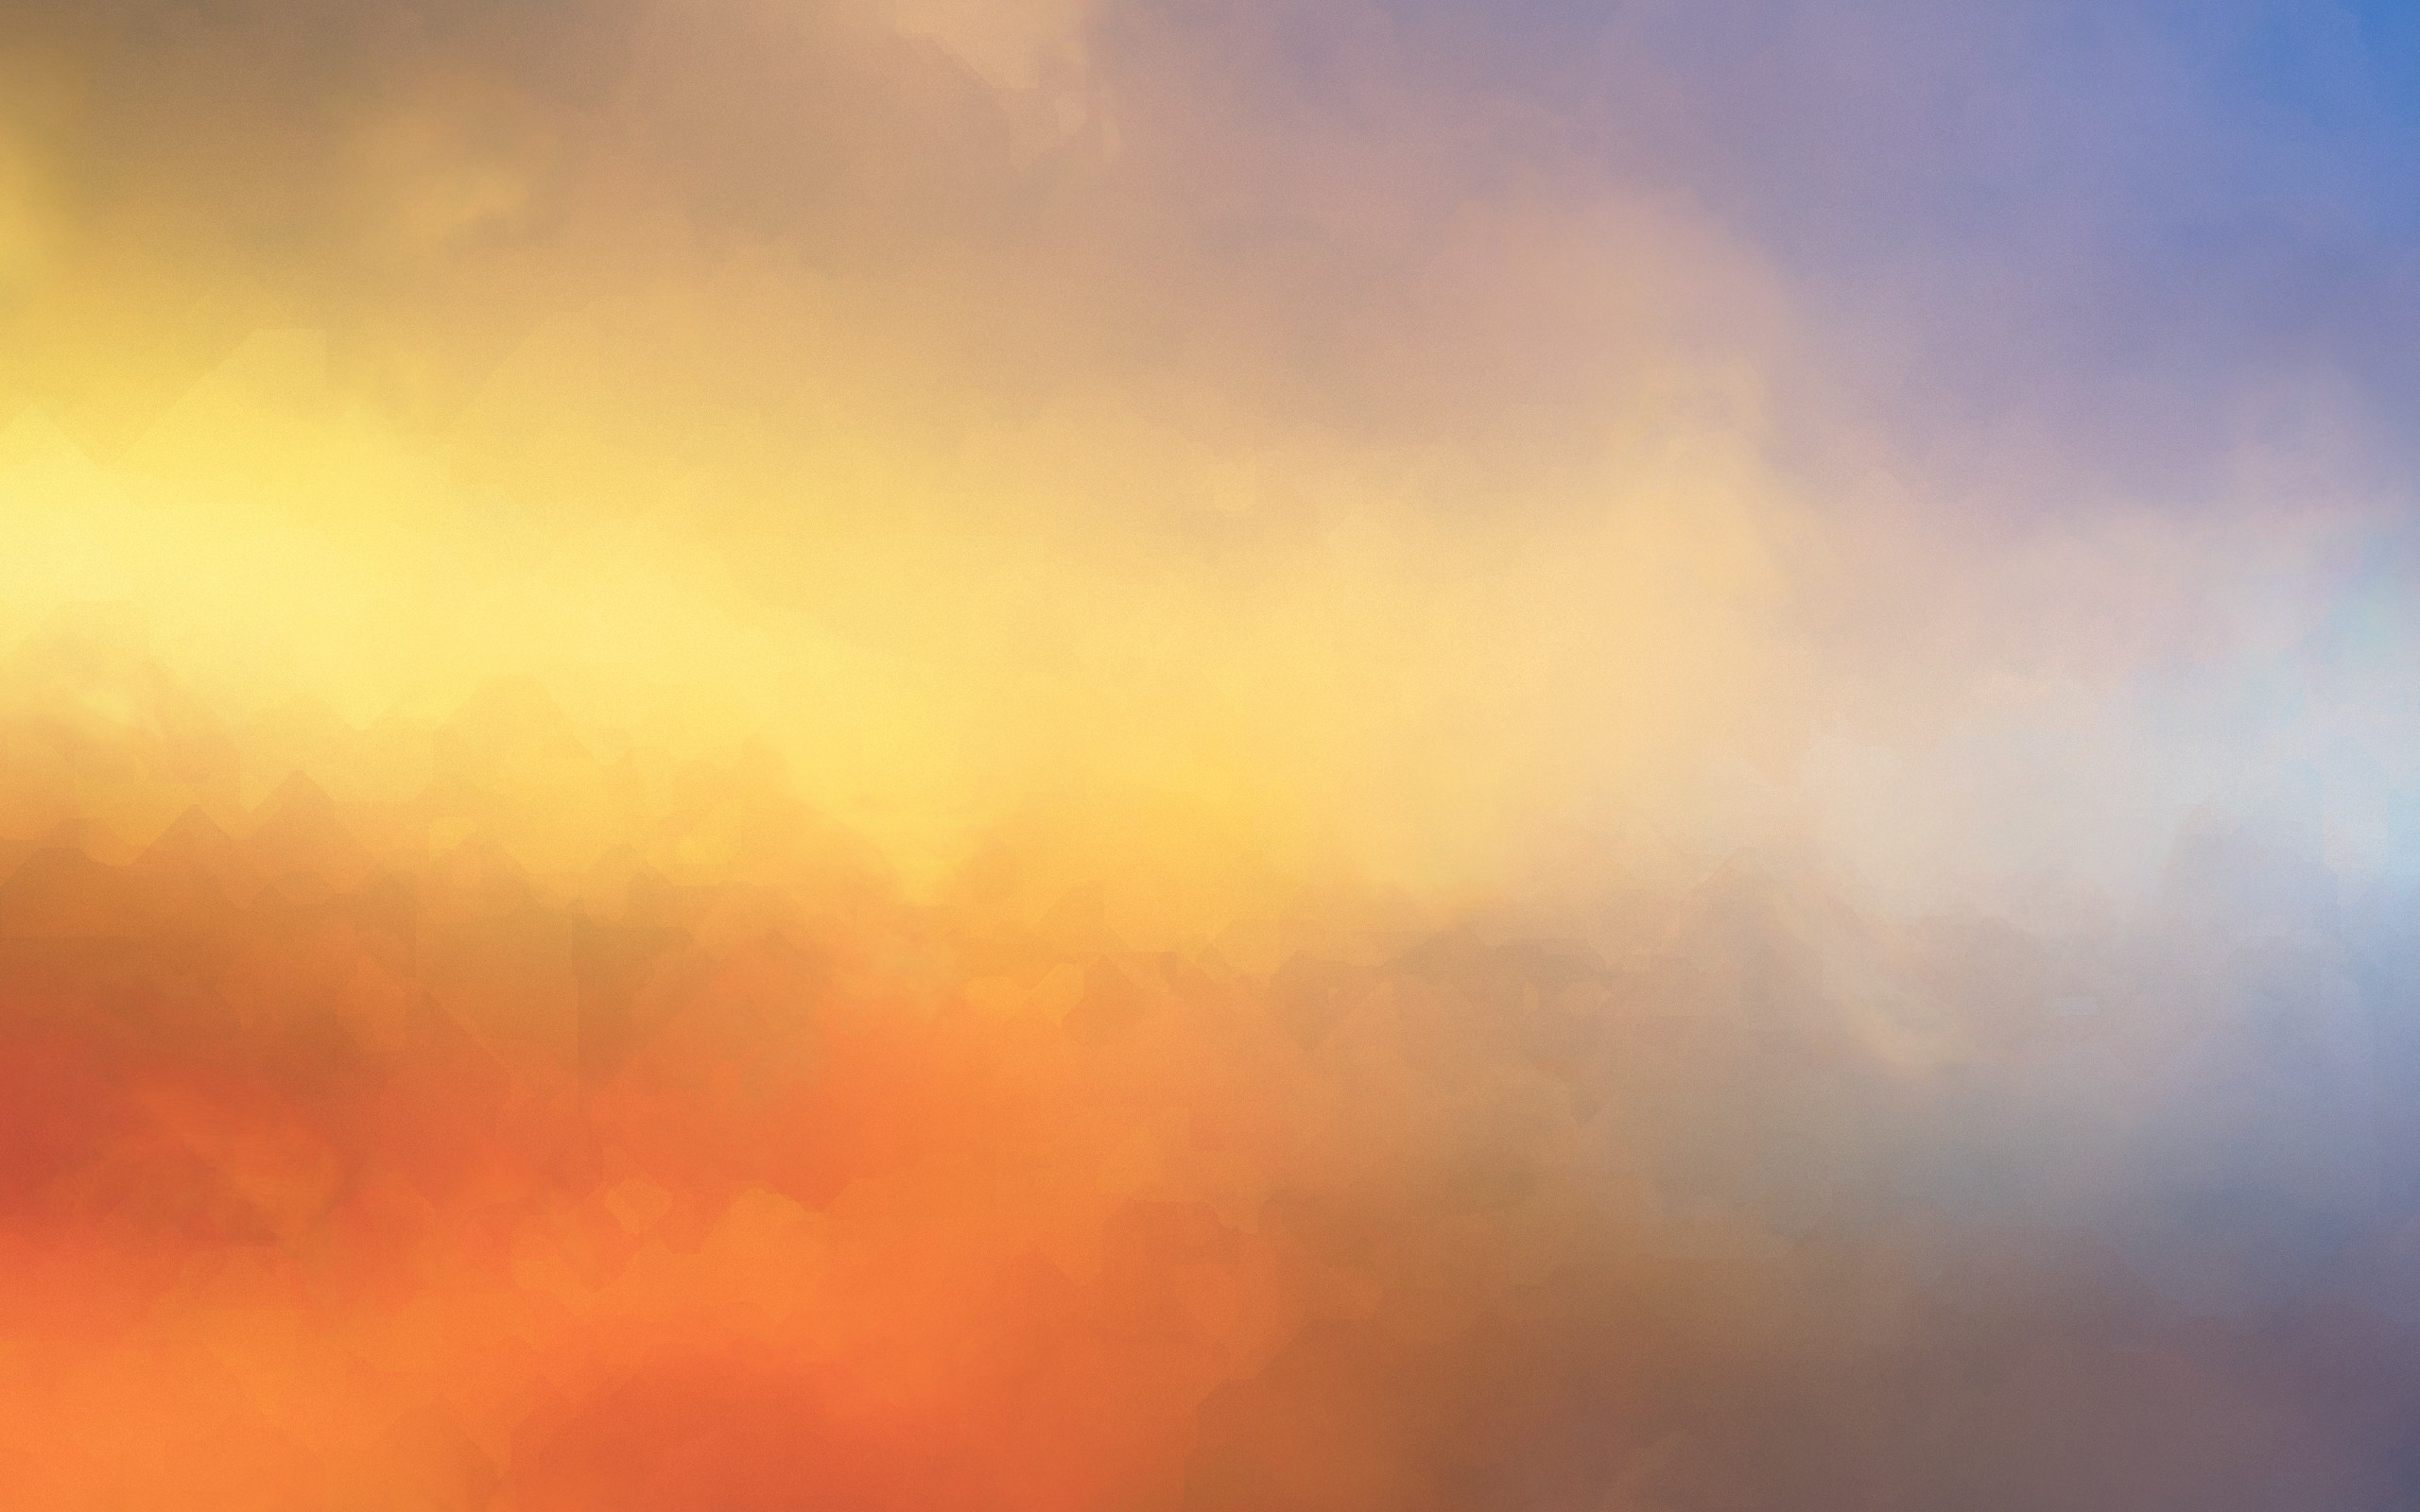 blurred-colors_wallpapers_35088_2560x1600